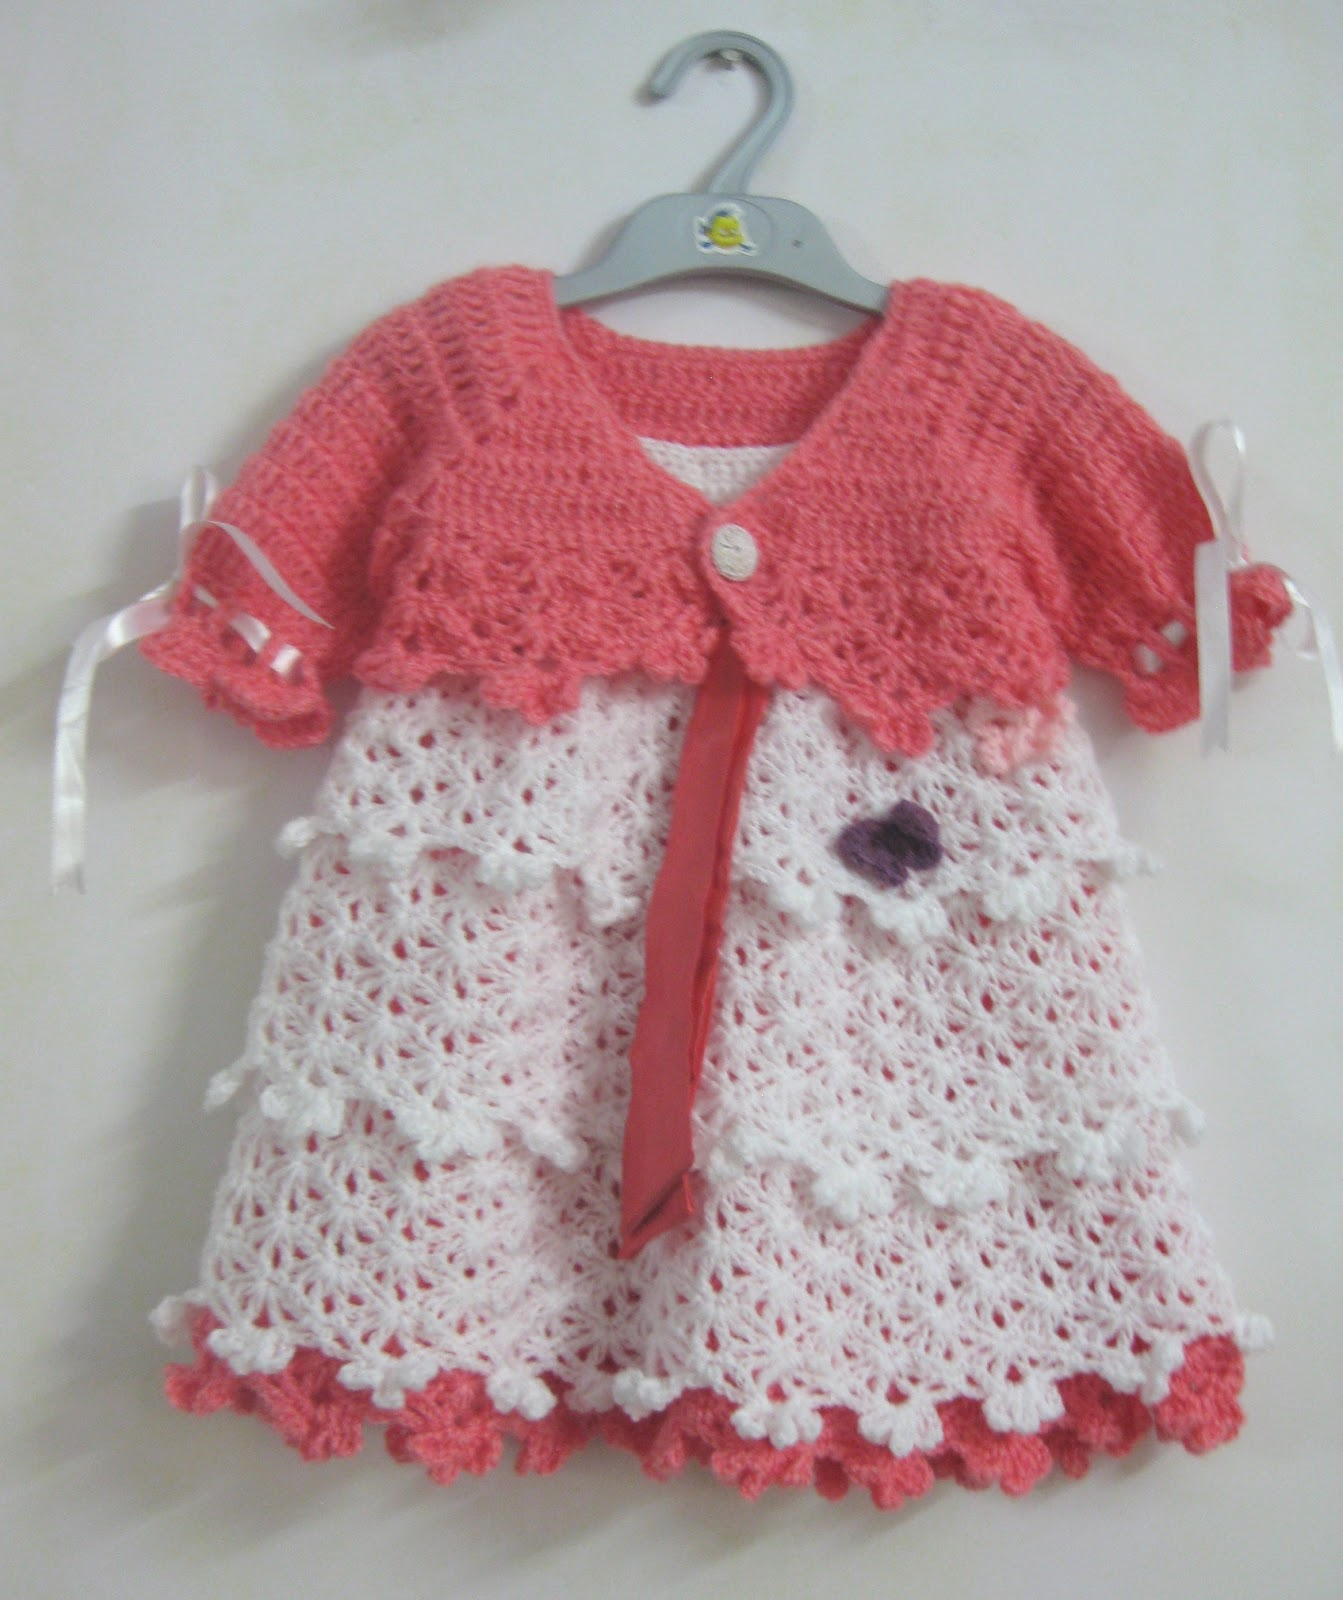 Crochet Baby Winter Dress Pattern : Welcome Winter!: Crocheted Baby Dress (Savannah Belle)